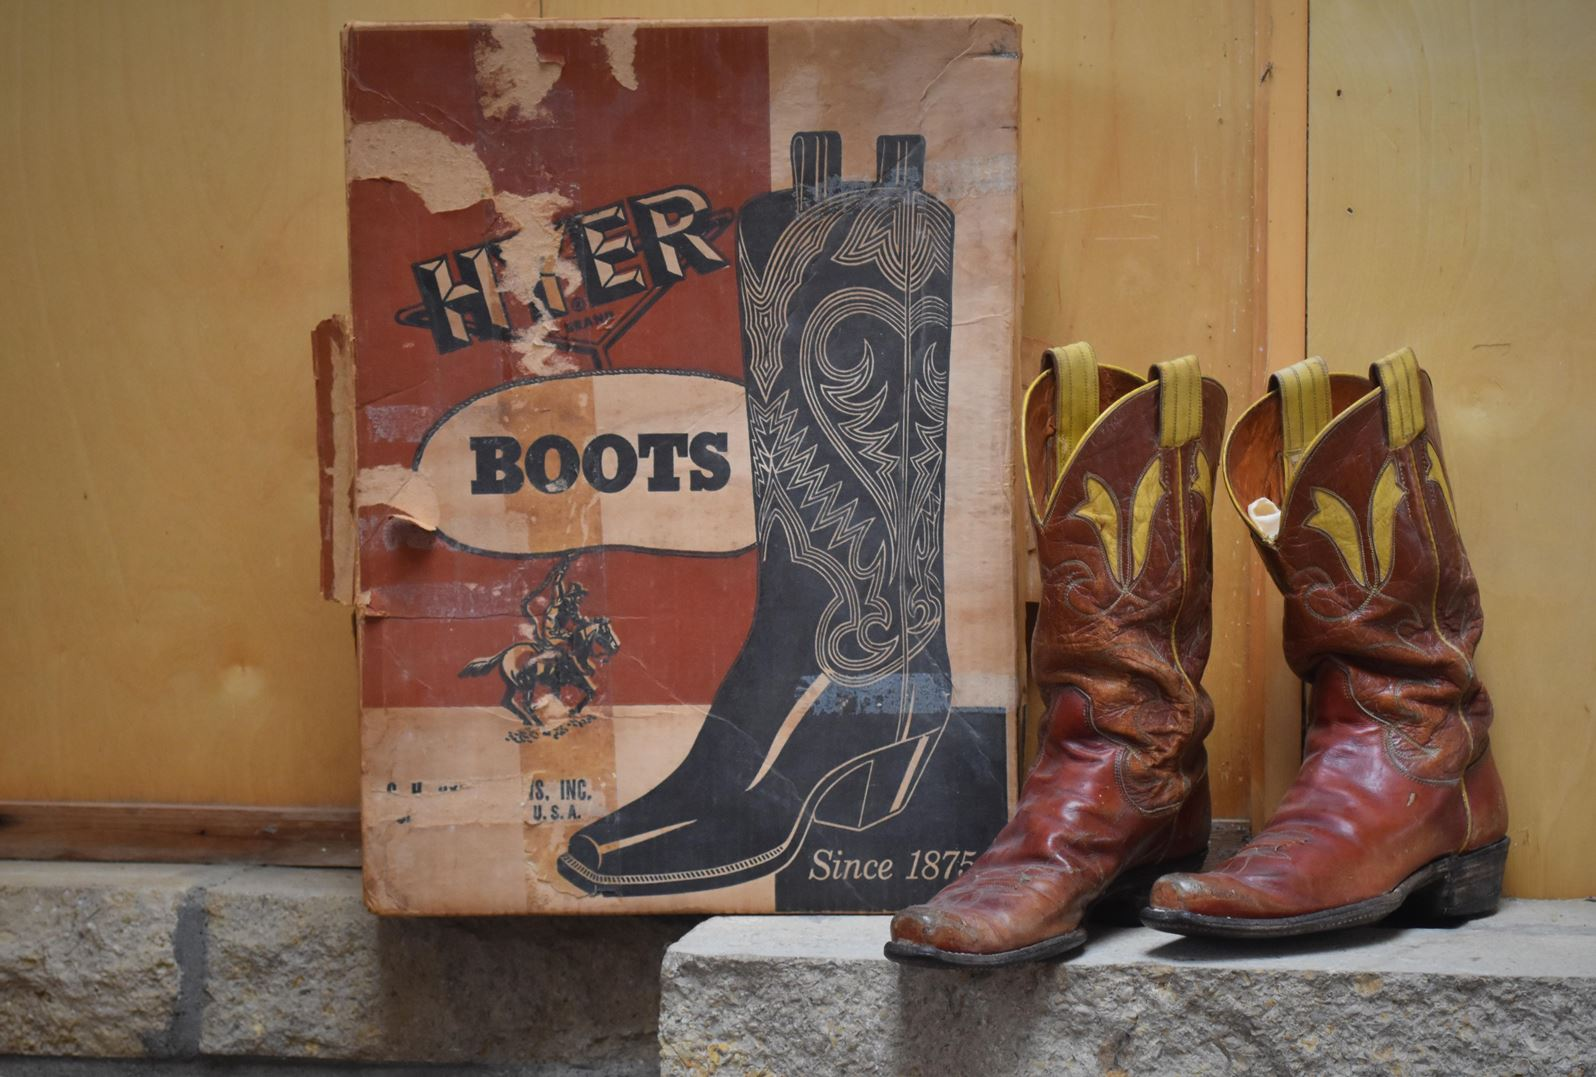 hyer boots box and cowboy boots